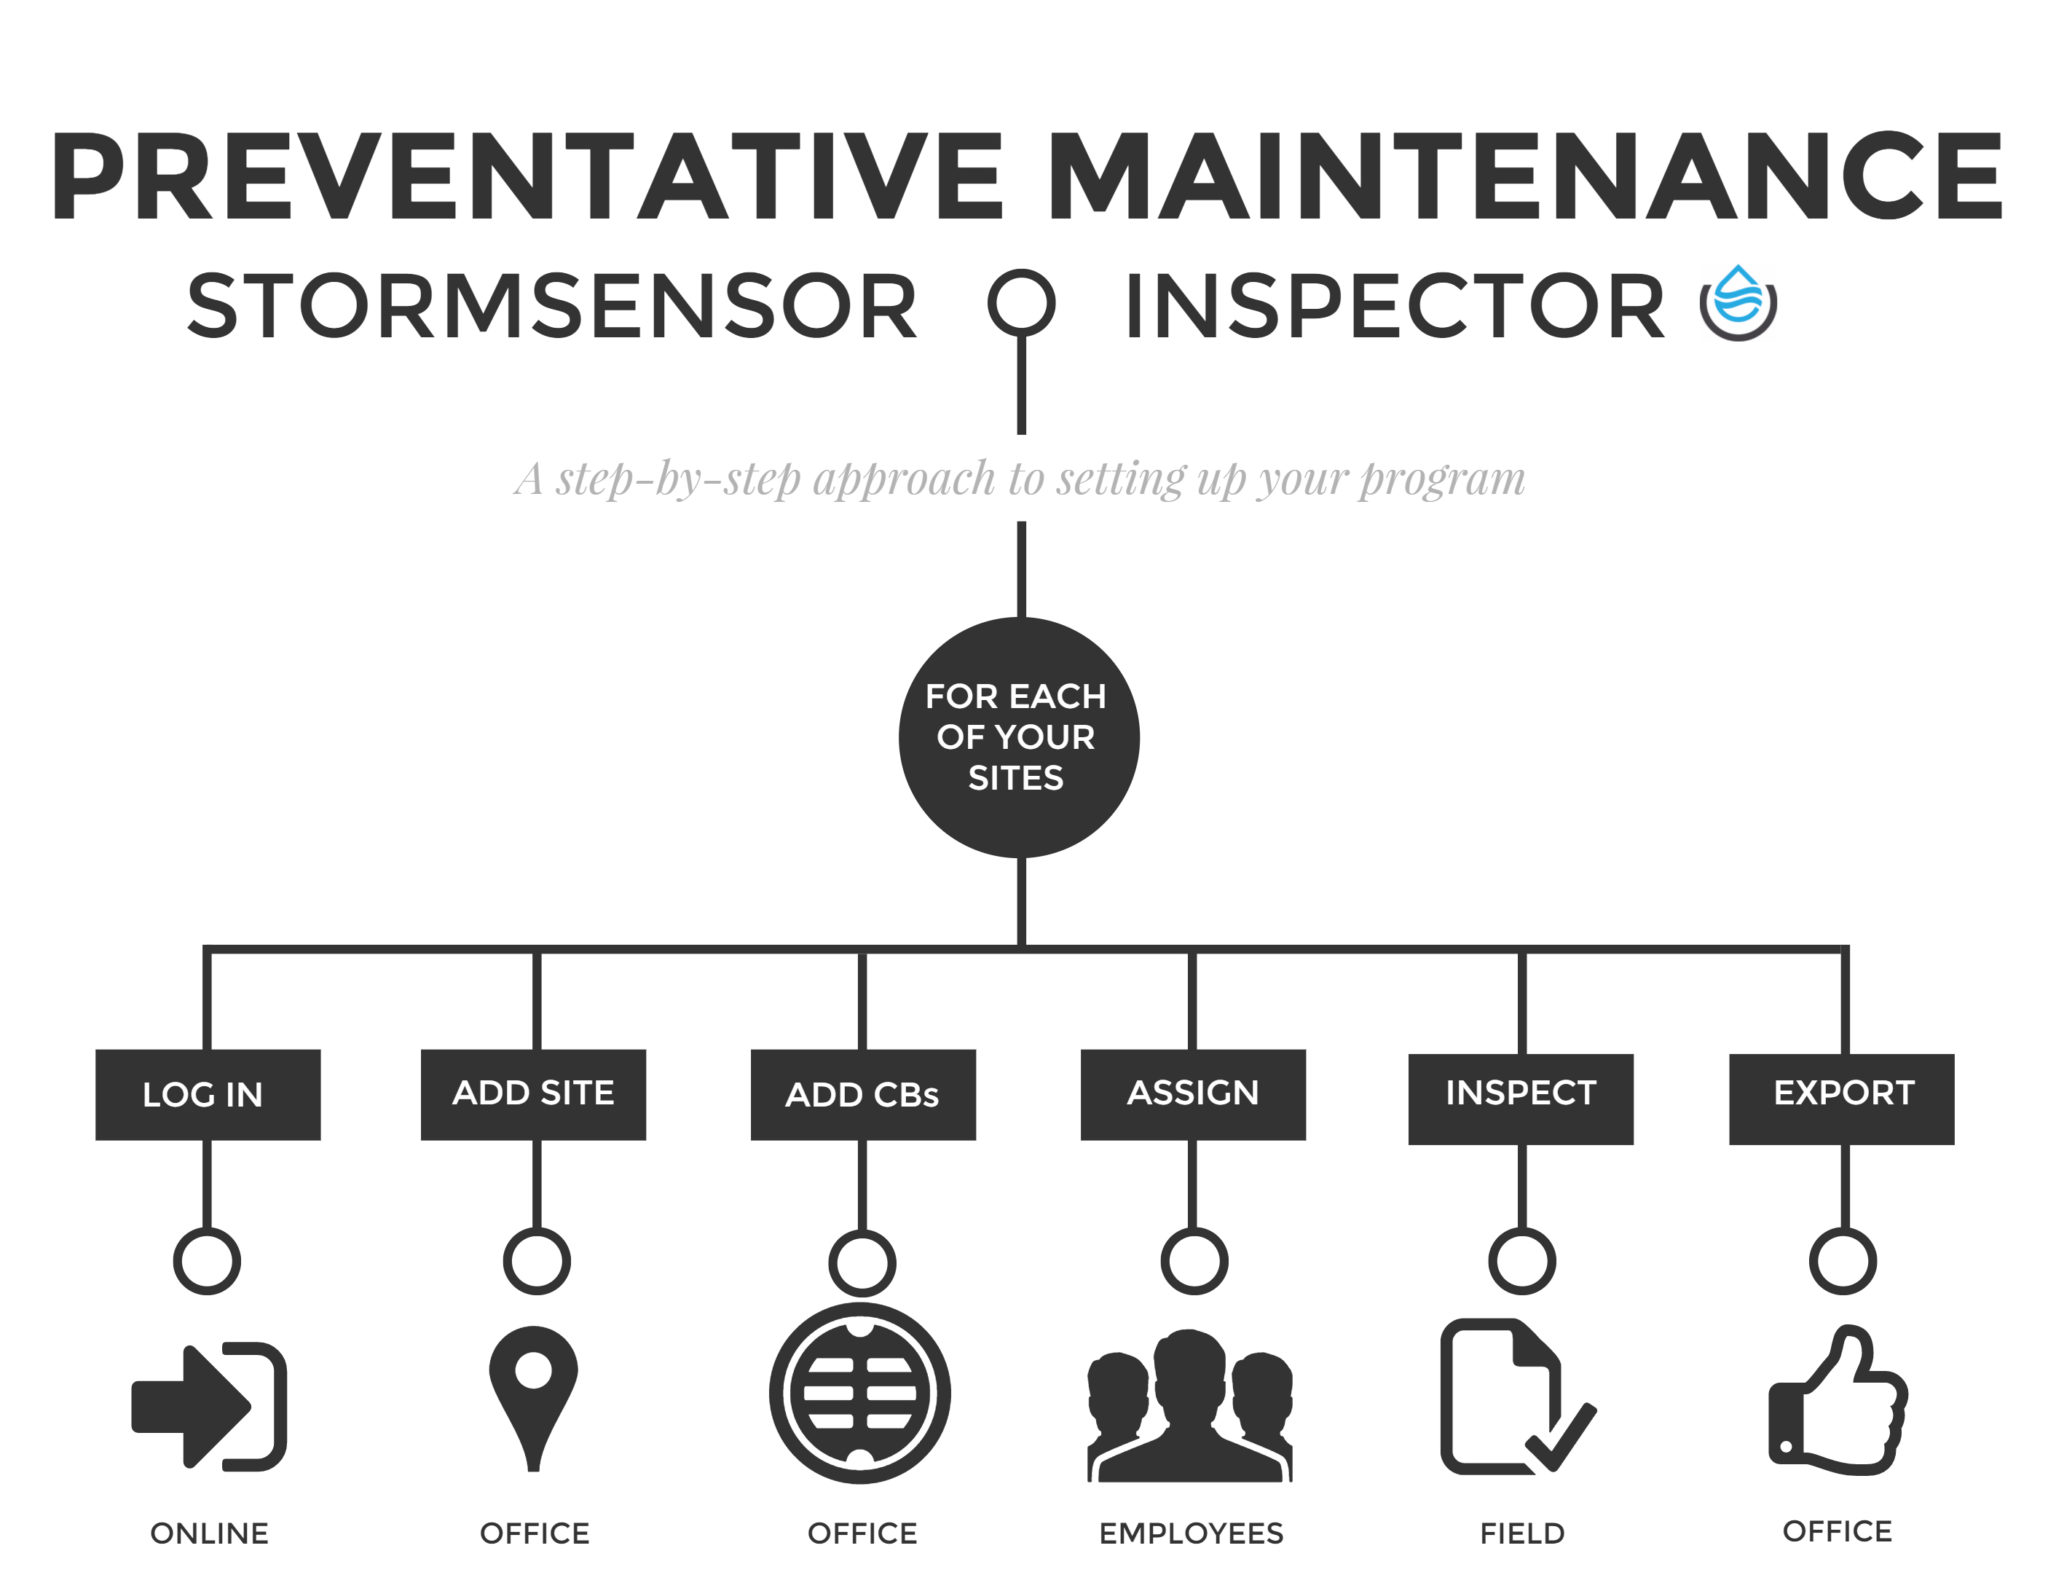 PREVENTATIVE STORM SYSTEM MAINTENANCE IS EASY!